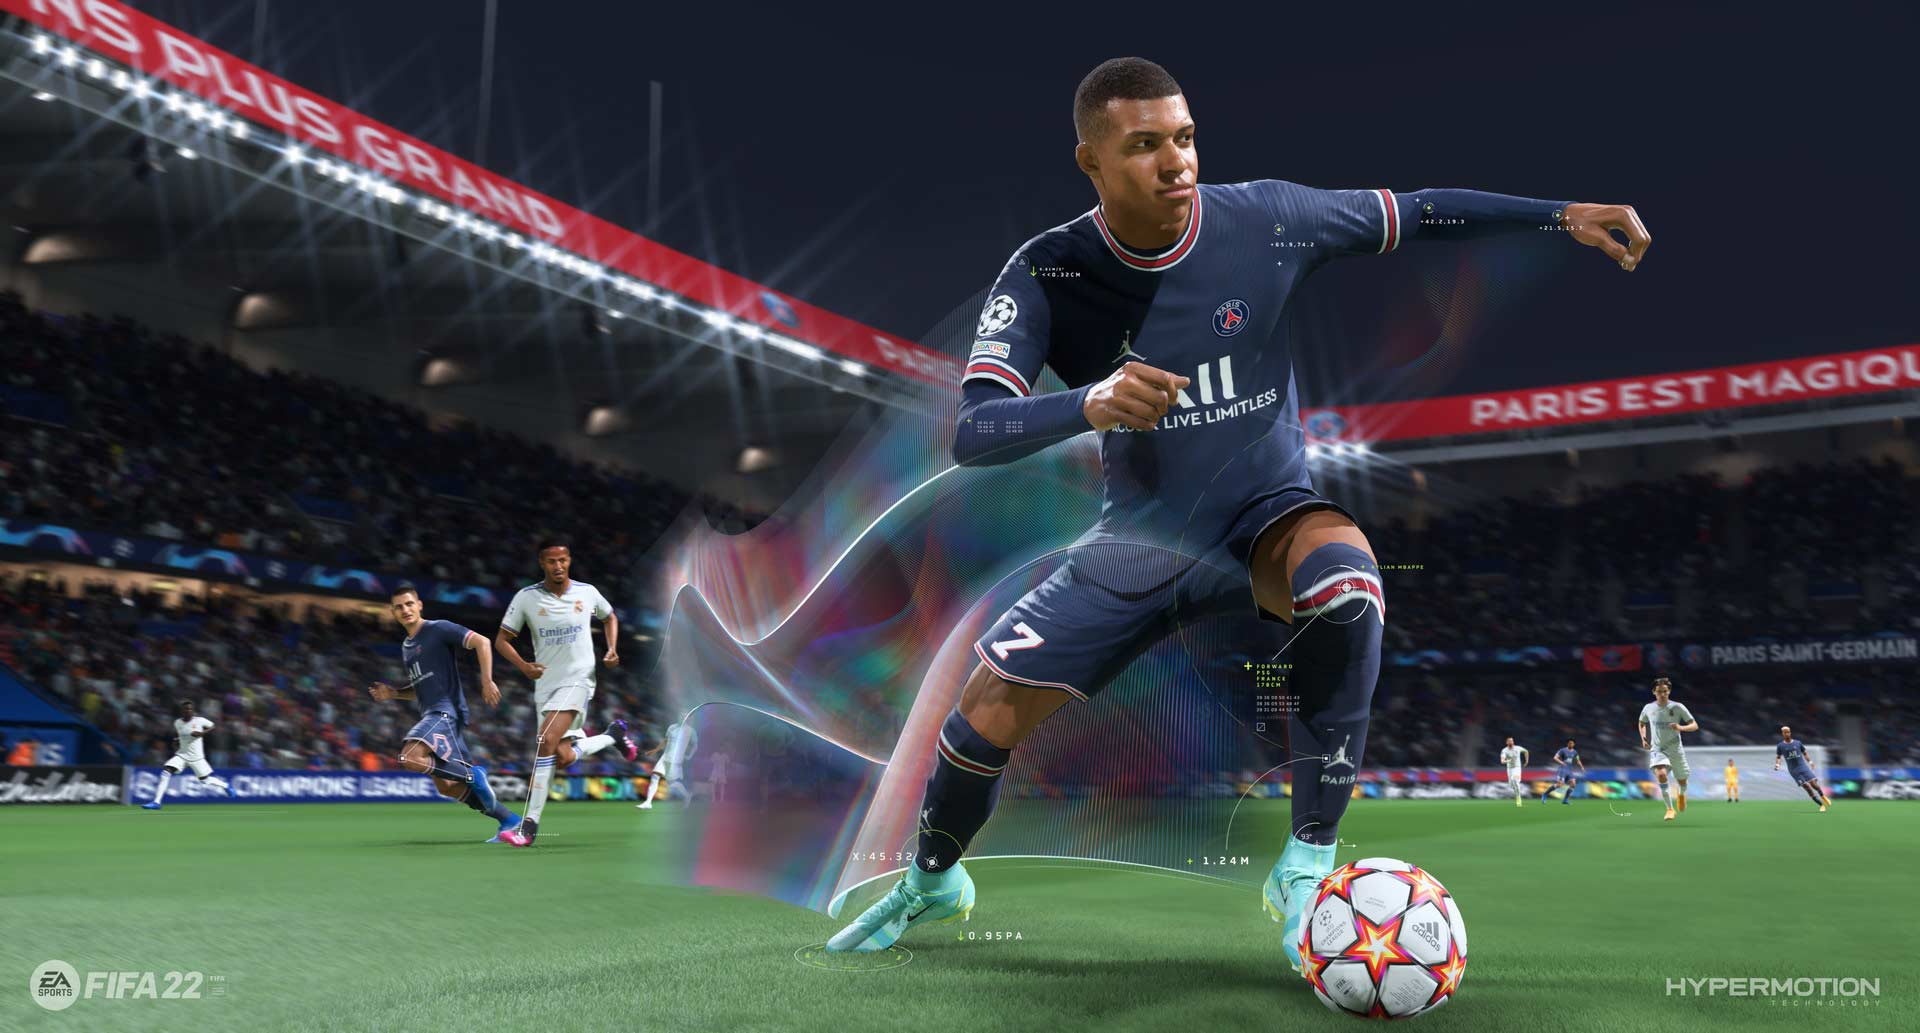 """Next generation features like """"Hyper Motion"""" stay in games """"FIFA 22"""" And """"Madden NFL 22"""" Exclusively reserved for next generation consoles from Microsoft and Sony.  © EA Sports"""